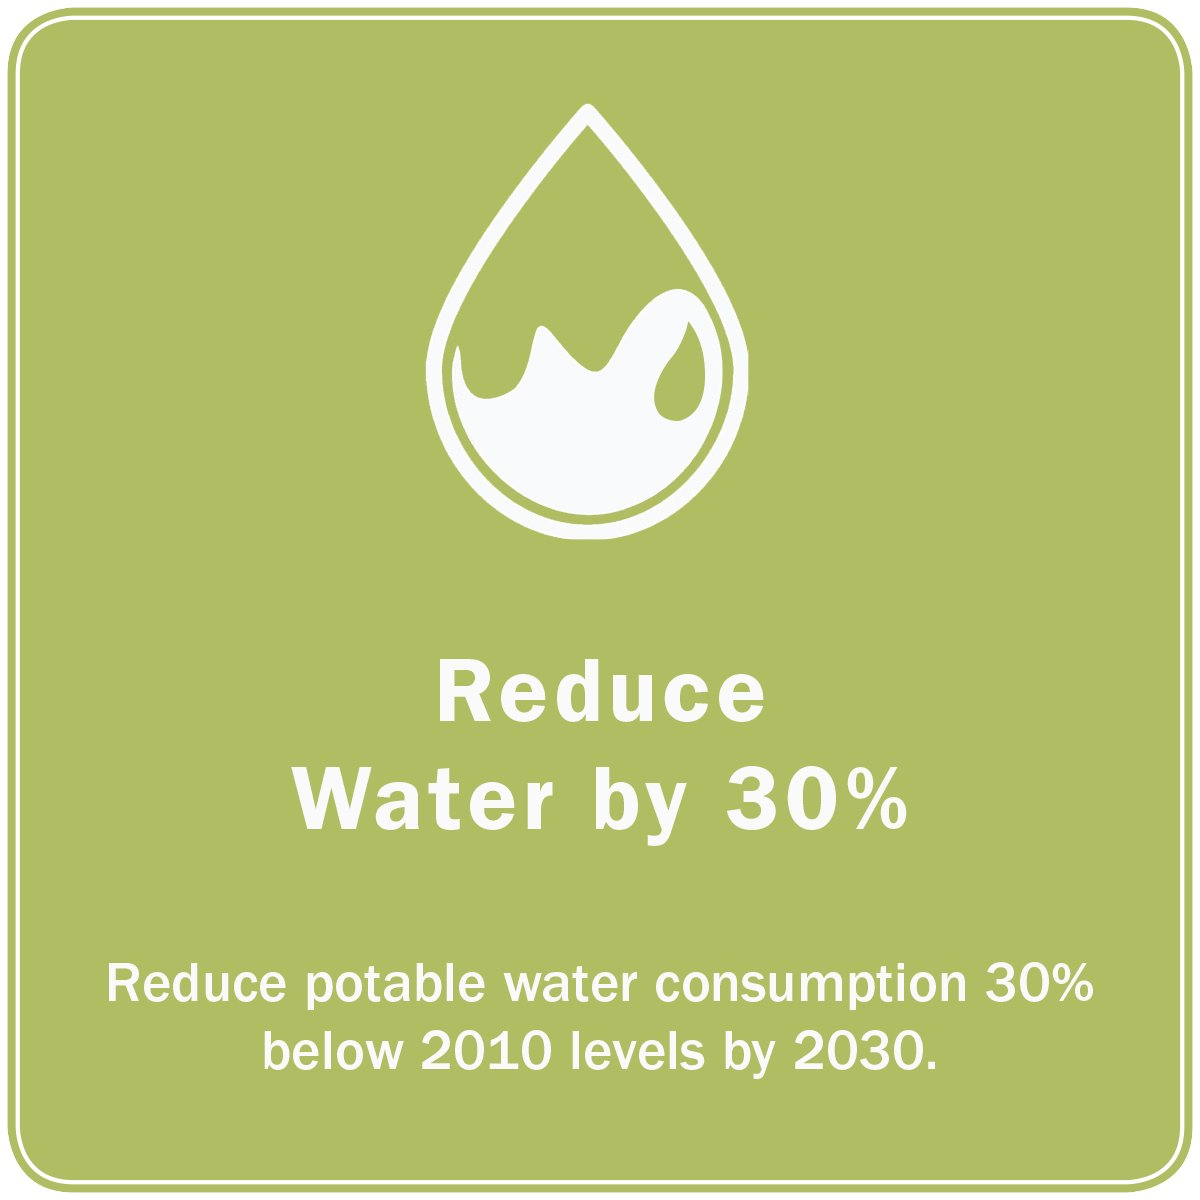 As part of the #30For30 goals, UVA has committed to reduce potable water consumption 30% below 2010 levels by 2030. #10BoldGoals https://t.co/bse4EnvhYa